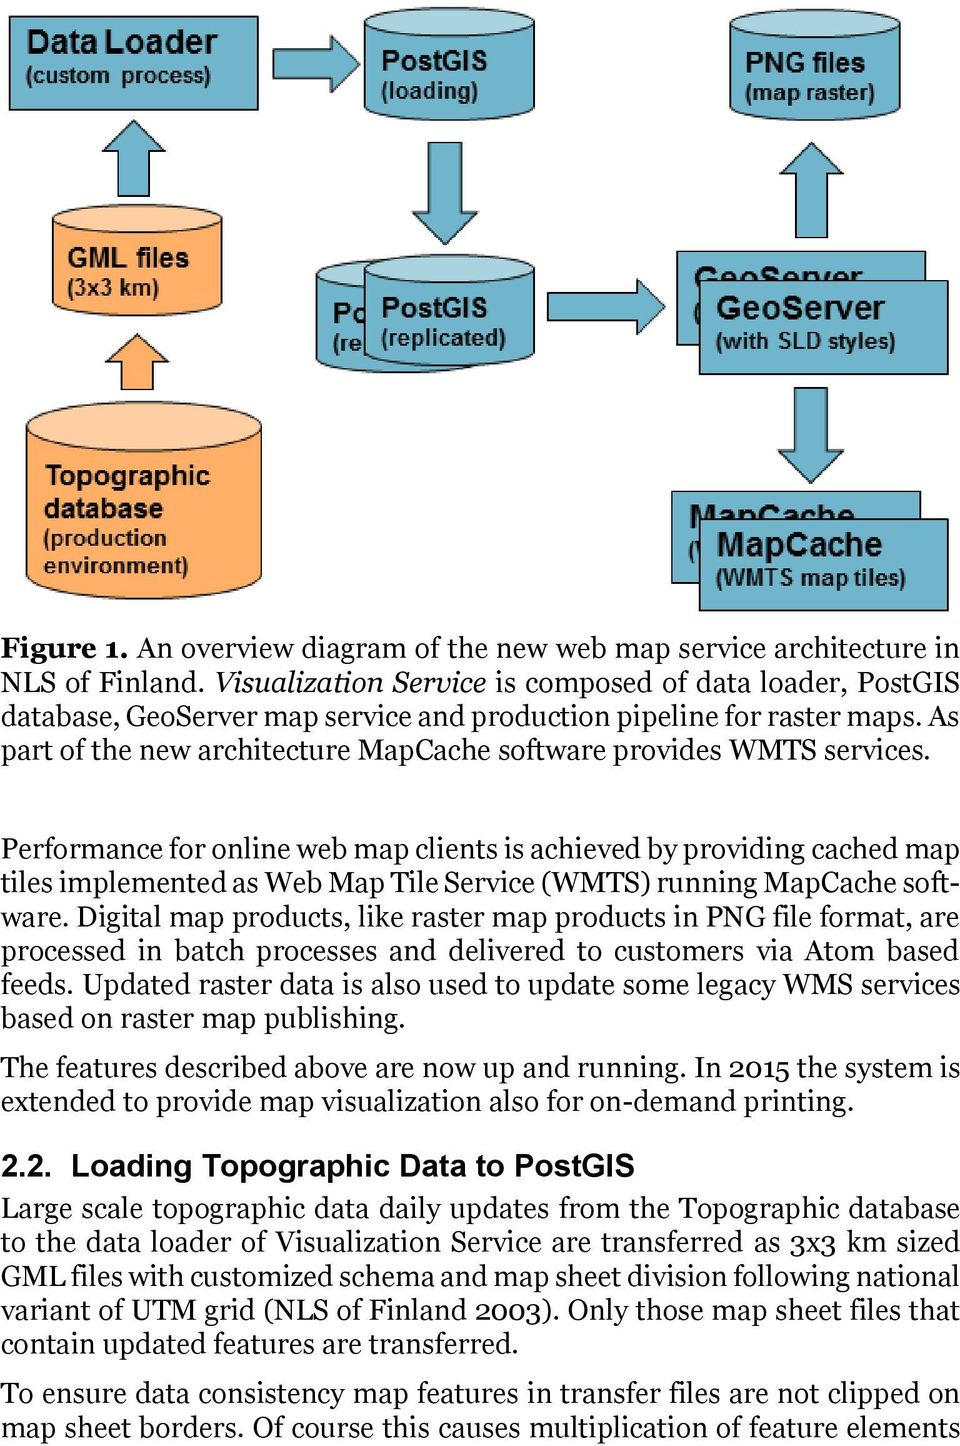 As part of the new architecture MapCache software provides WMTS services.